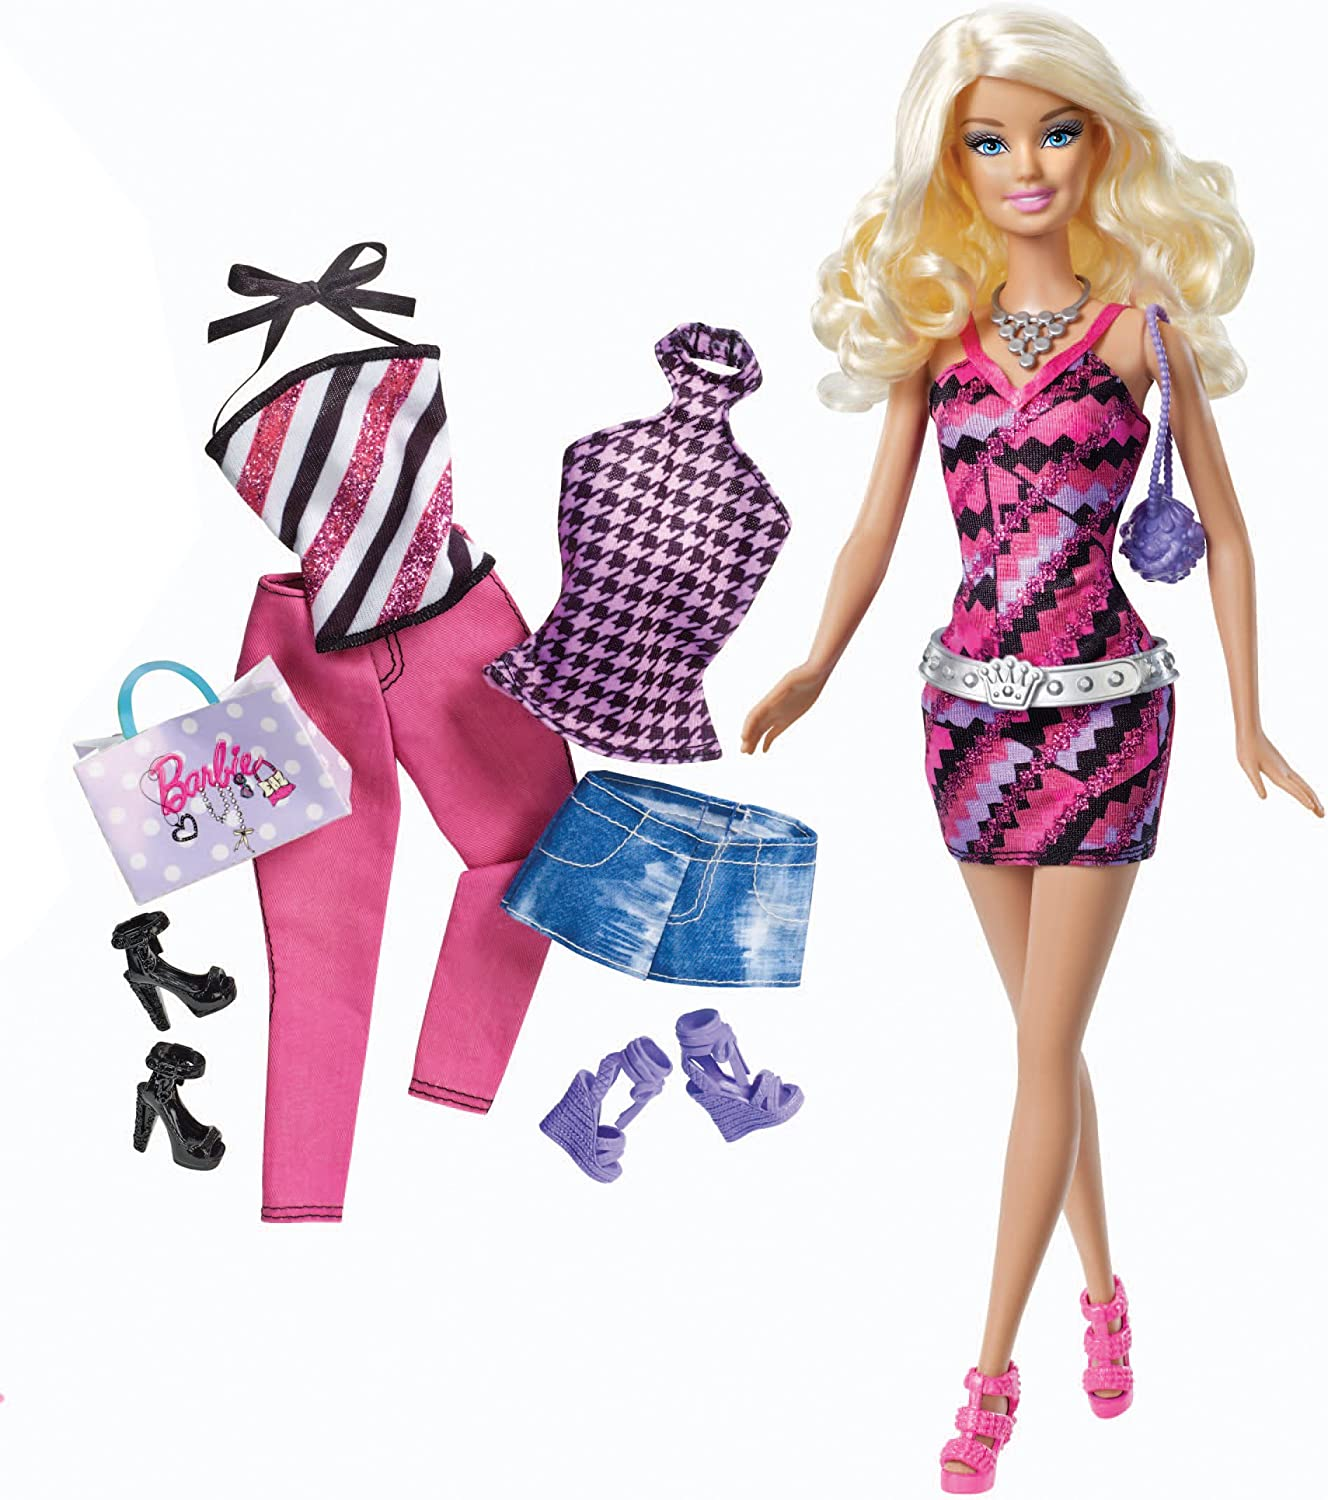 Mattel BBX43 Barbie & Mode Set Barbie